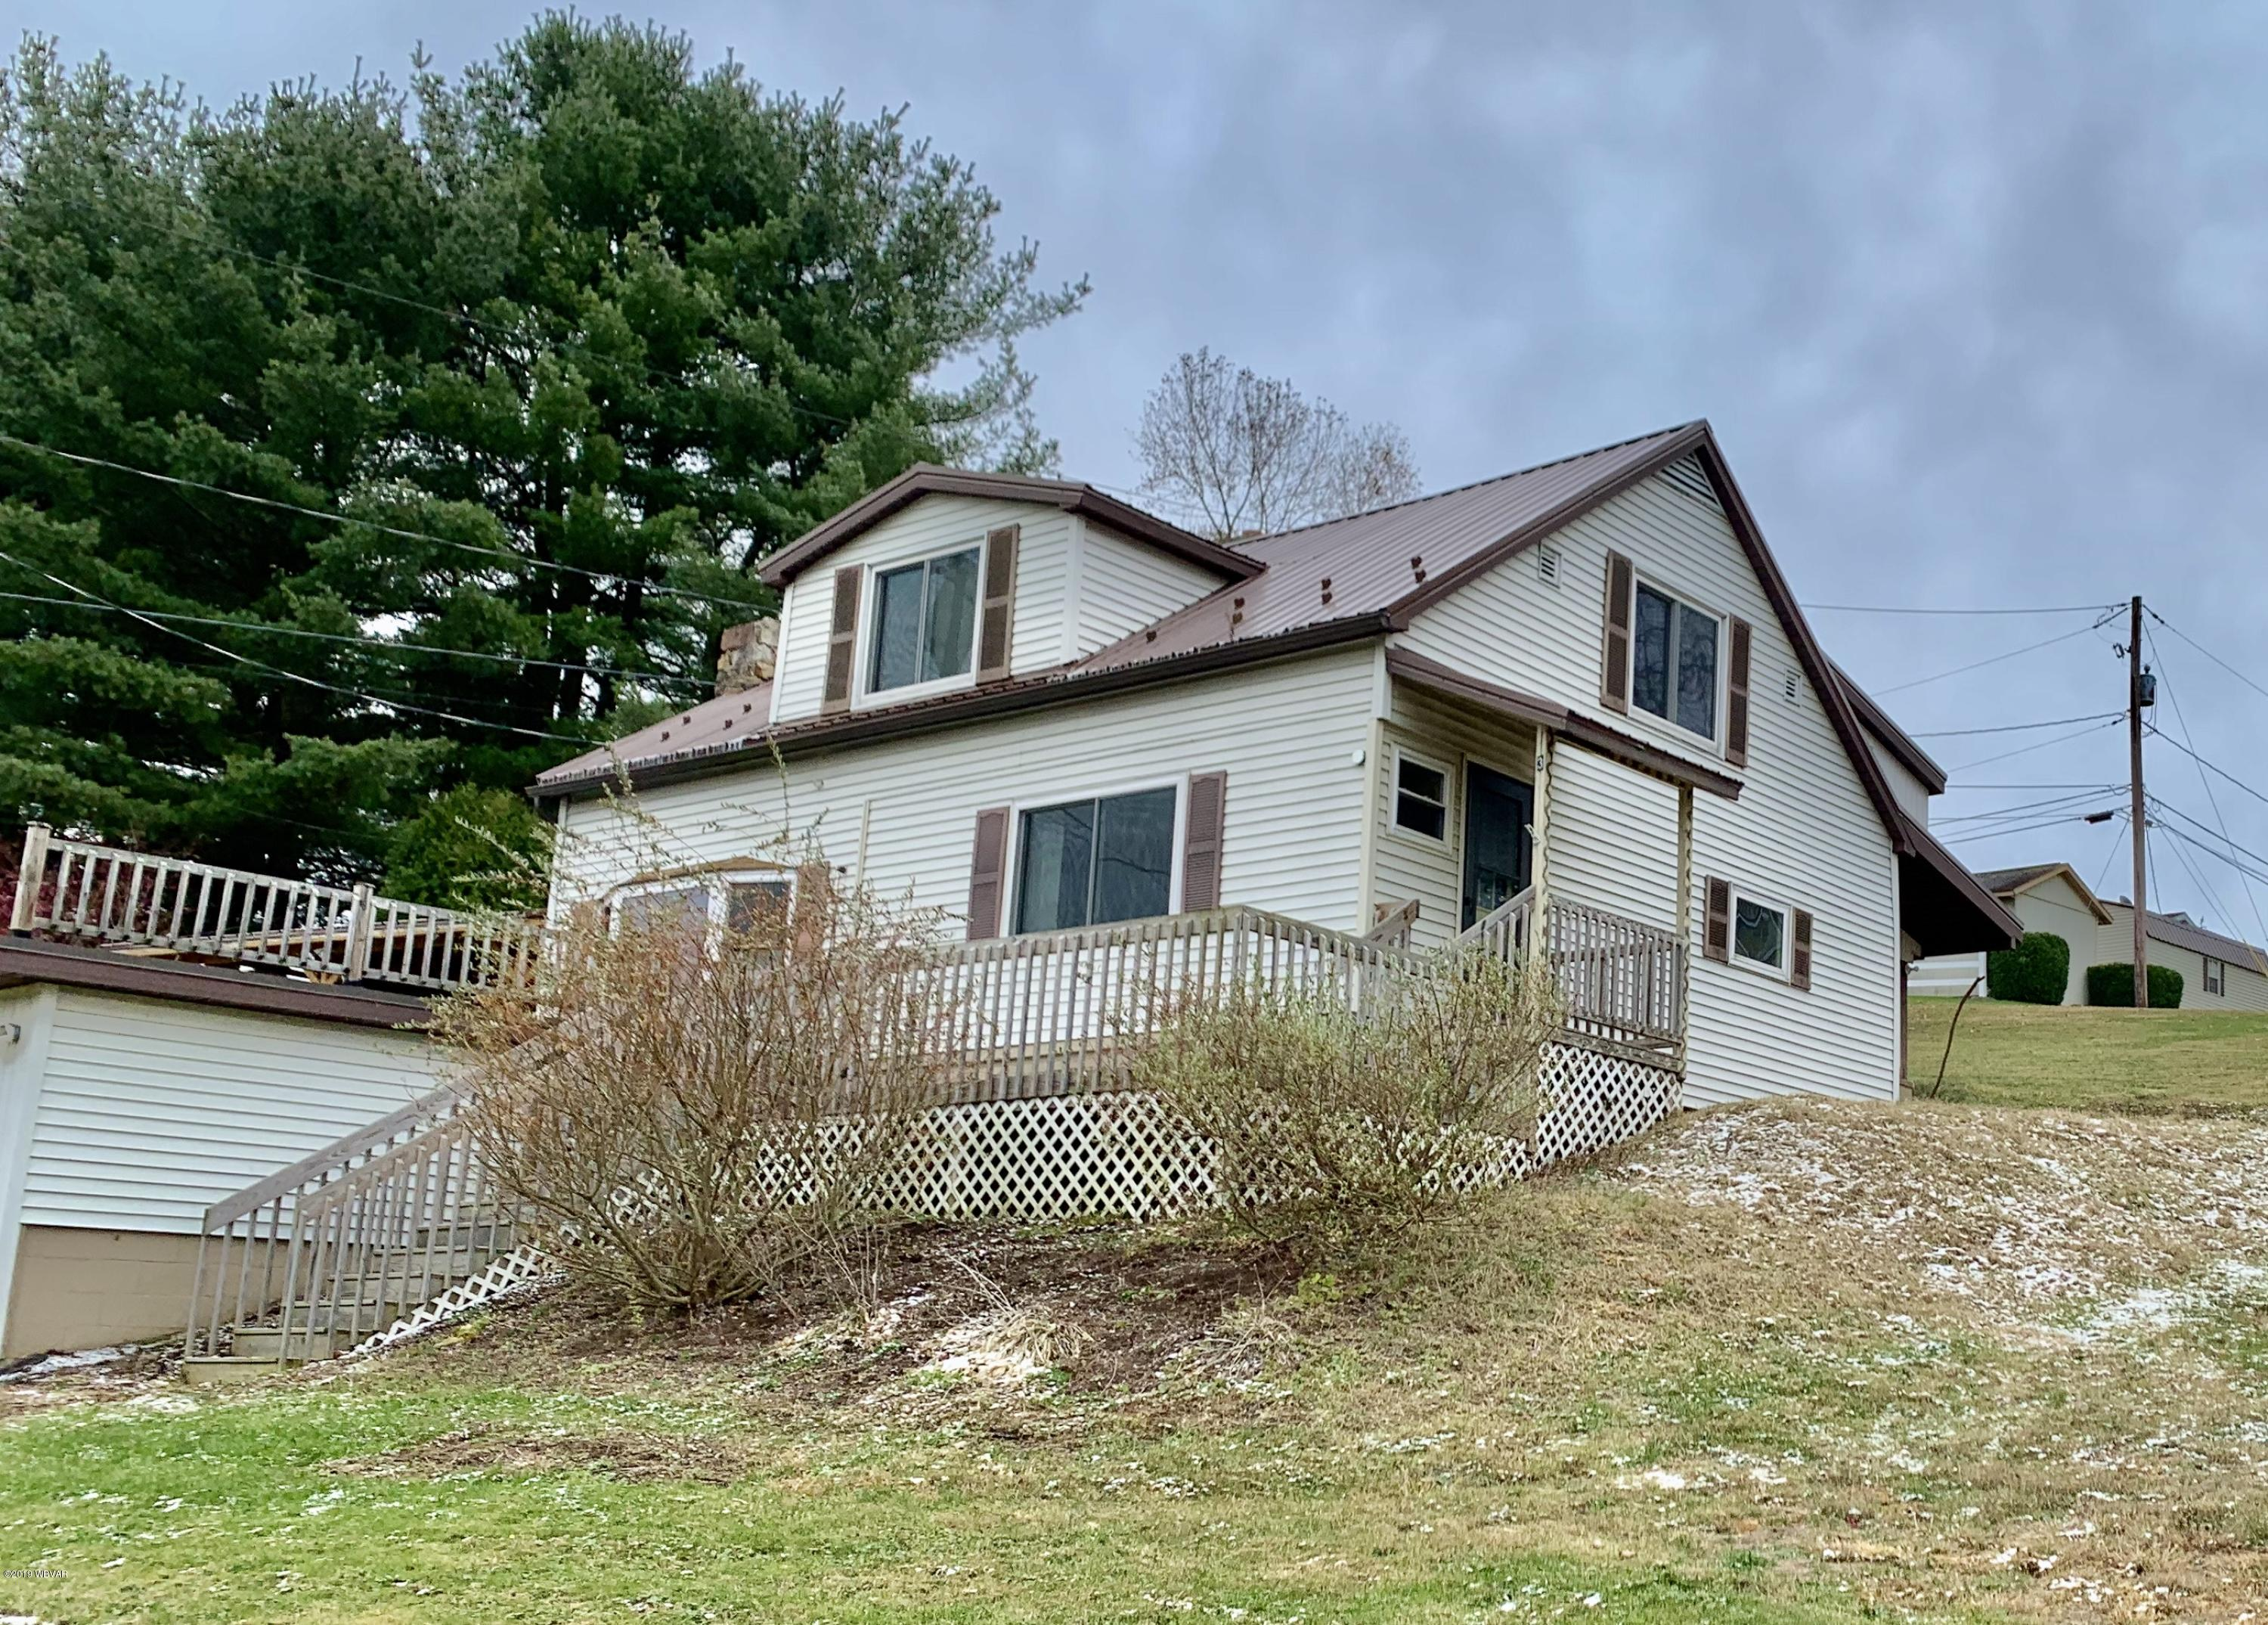 5 PLYMOUTH AVENUE,Jersey Shore,PA 17740,3 Bedrooms Bedrooms,2 BathroomsBathrooms,Residential,PLYMOUTH,WB-89081